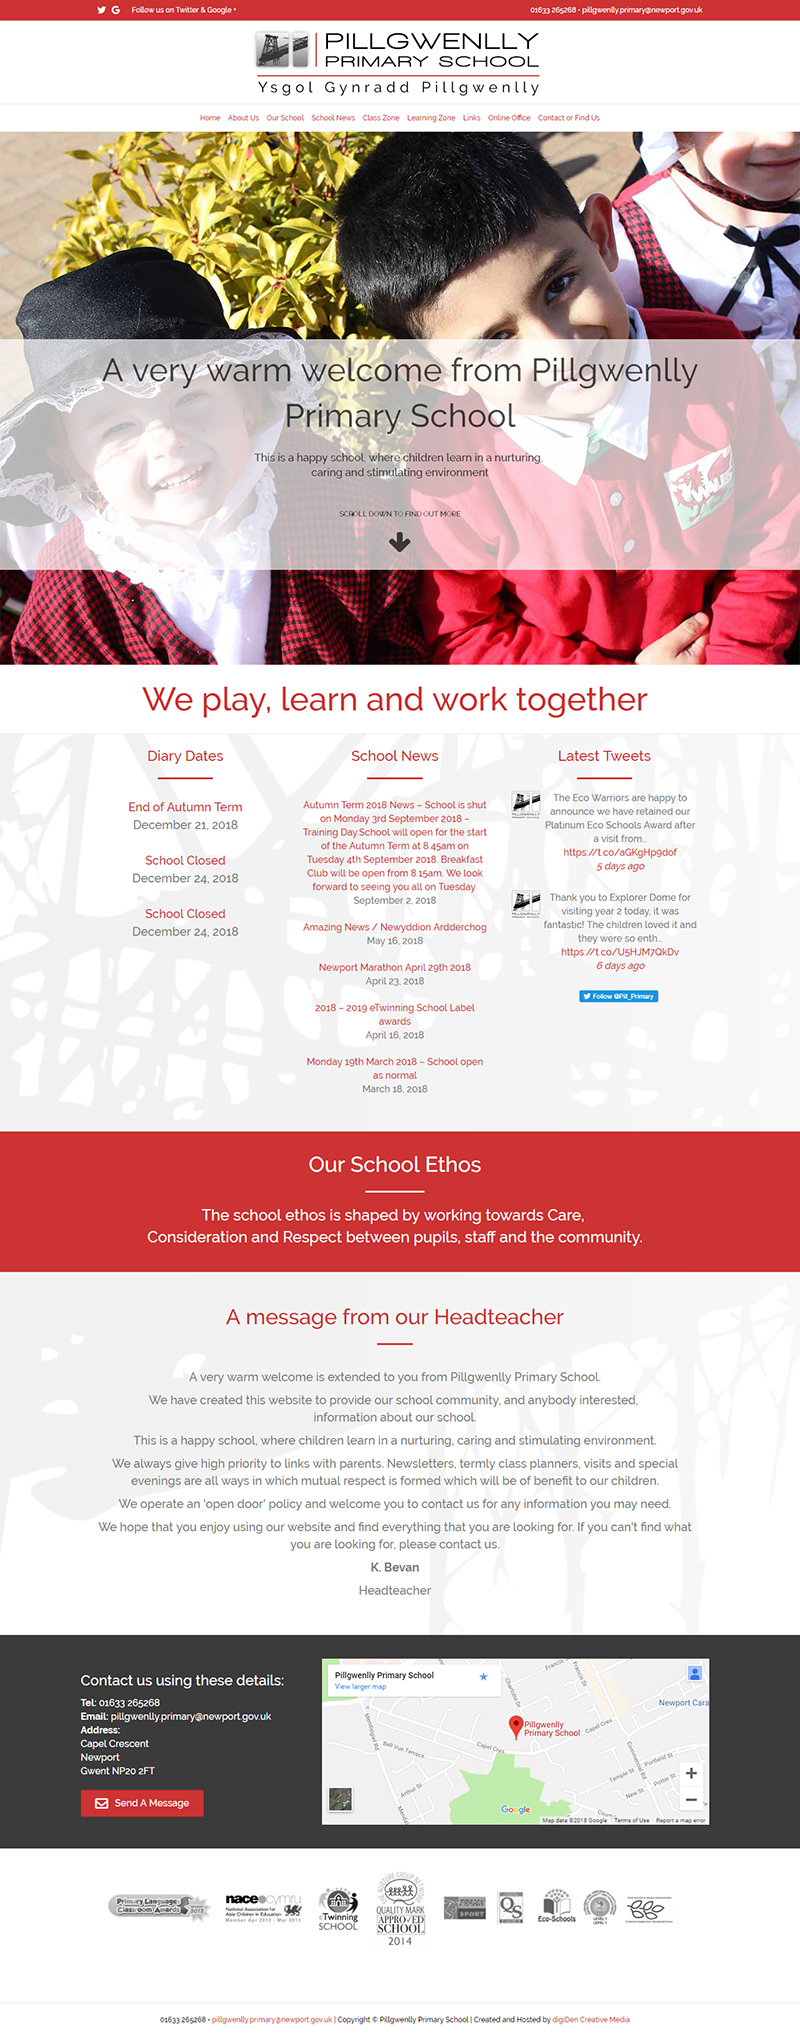 Pillgwenlly-Primary-School-Website-Design